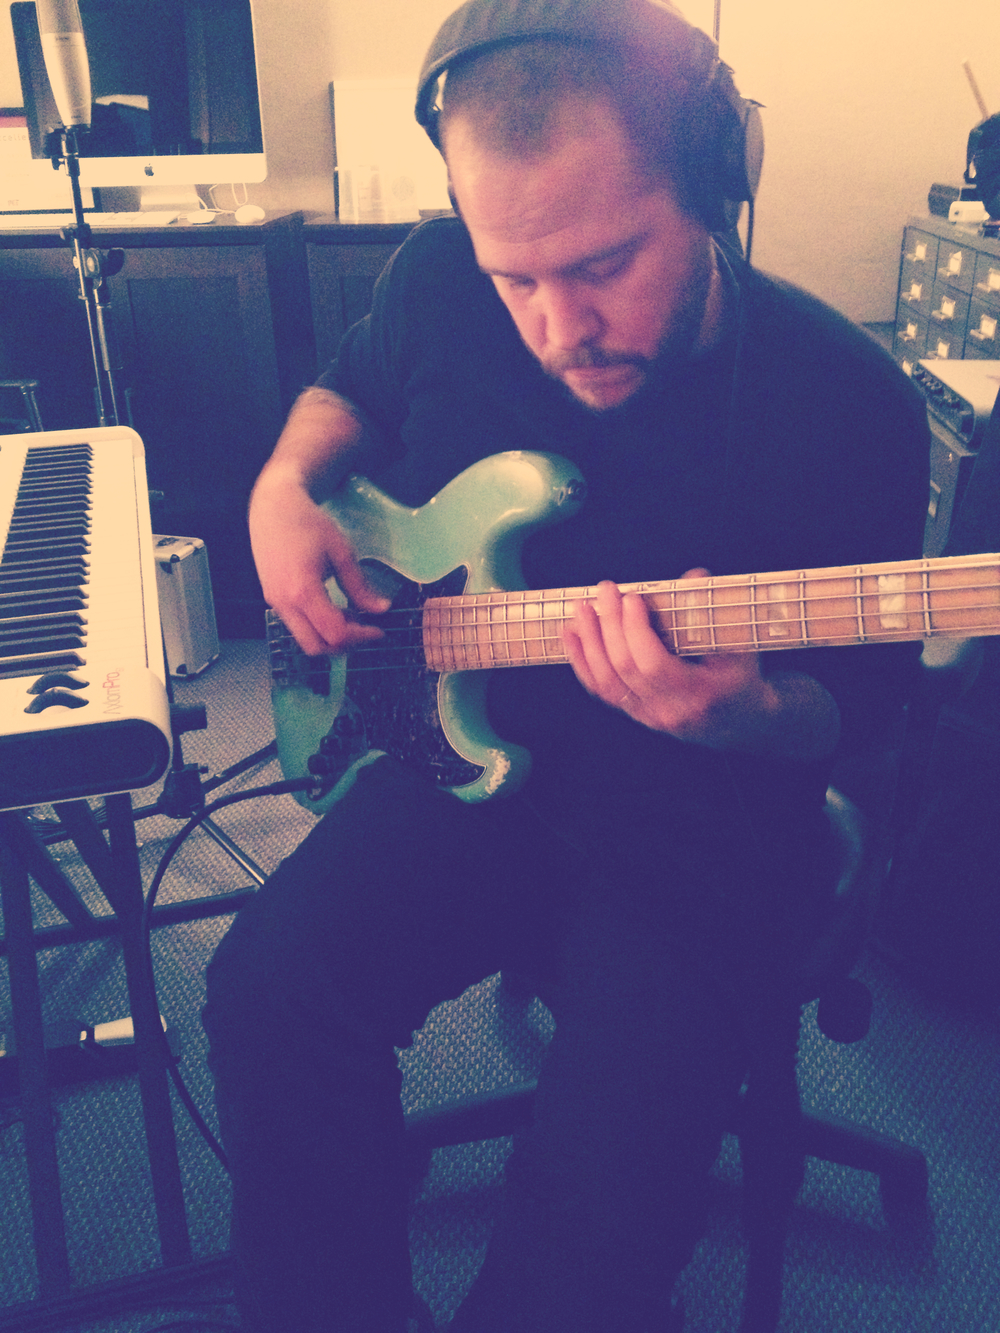 Jeff on electric bass.